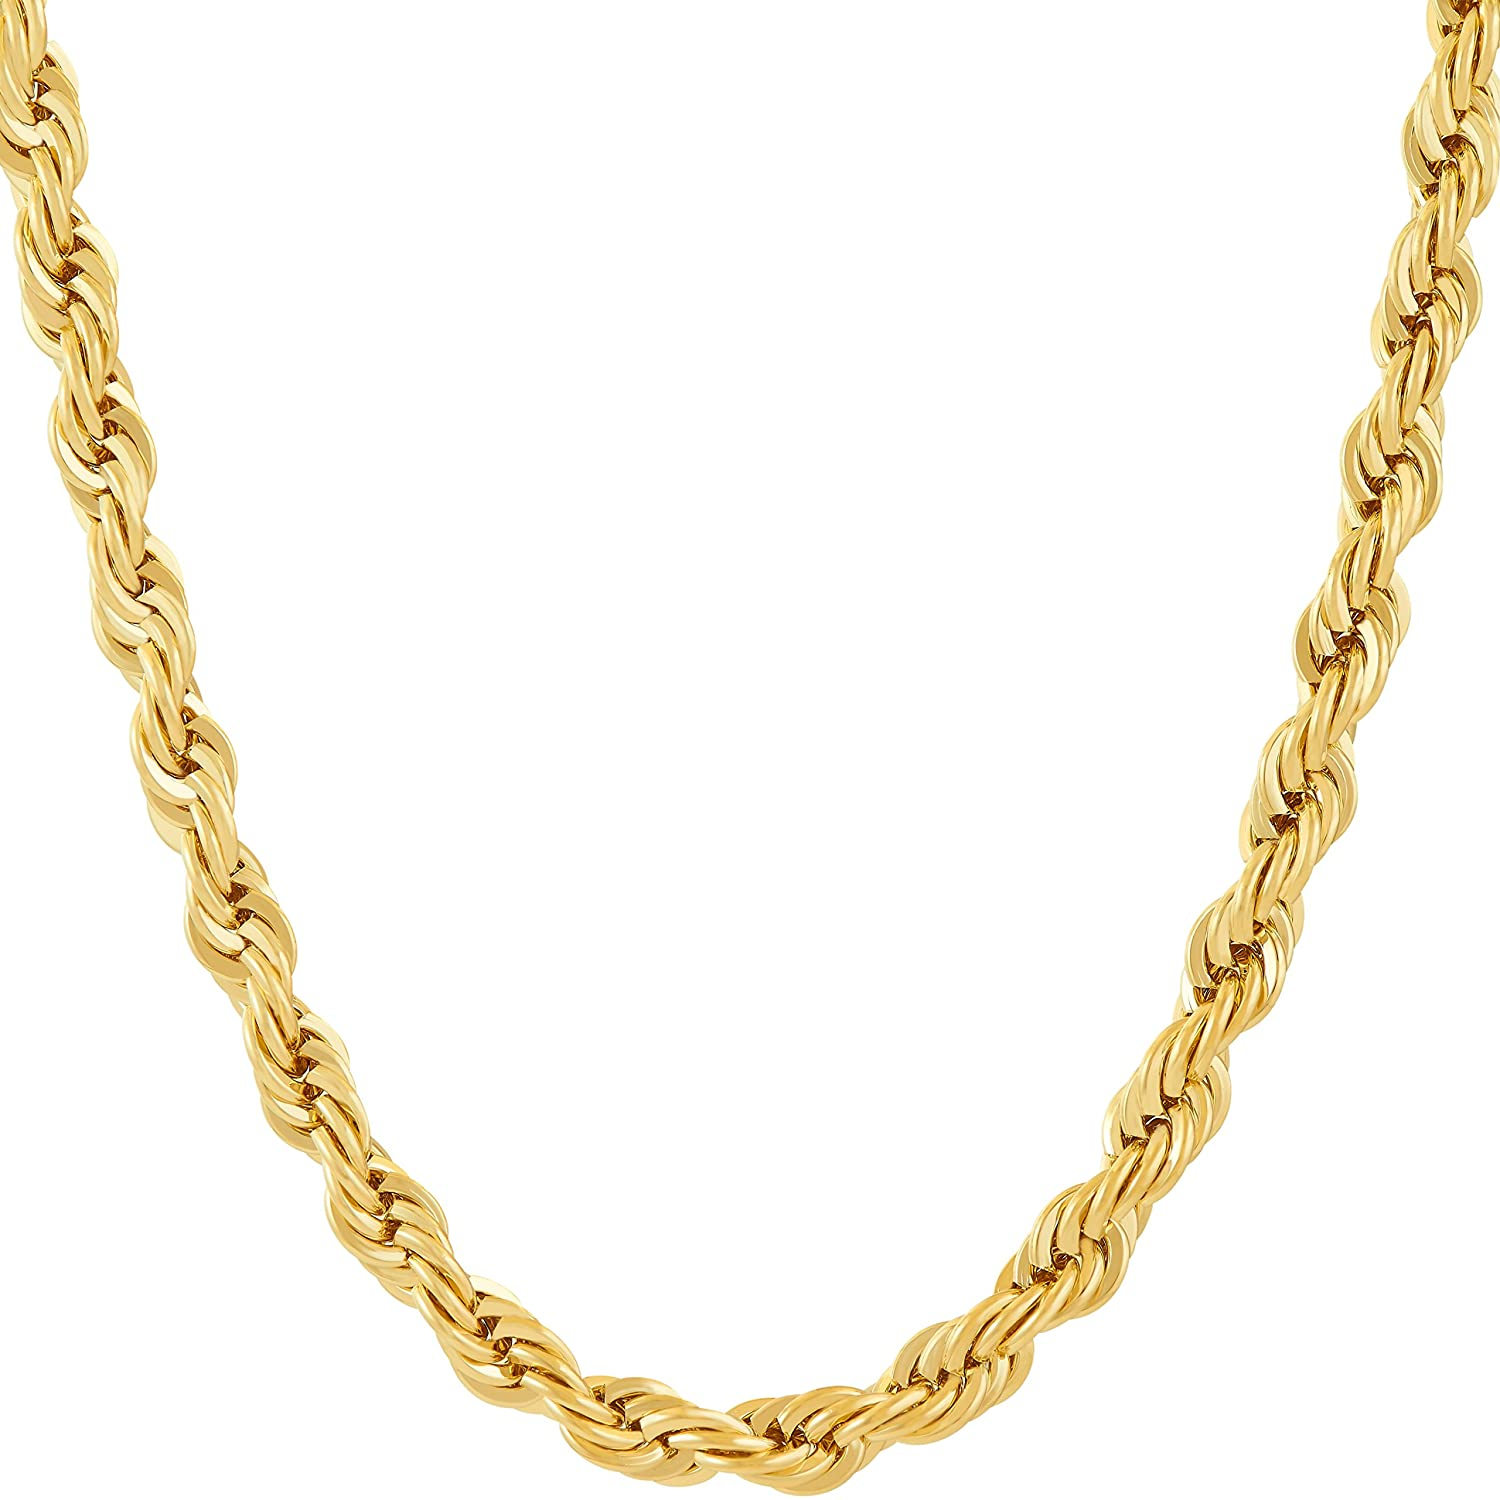 Lifetime Jewelry Chains for Men & Women [ 6mm Rope Chain ] Up to 20X More 24k Real Gold Plating Than Other Gold Plated Chains - Durable Gold Necklace 16 to 36 inches 24K Gold with Inlaid Bronze Premium Fashion Jewelry Guaranteed for Life Choker